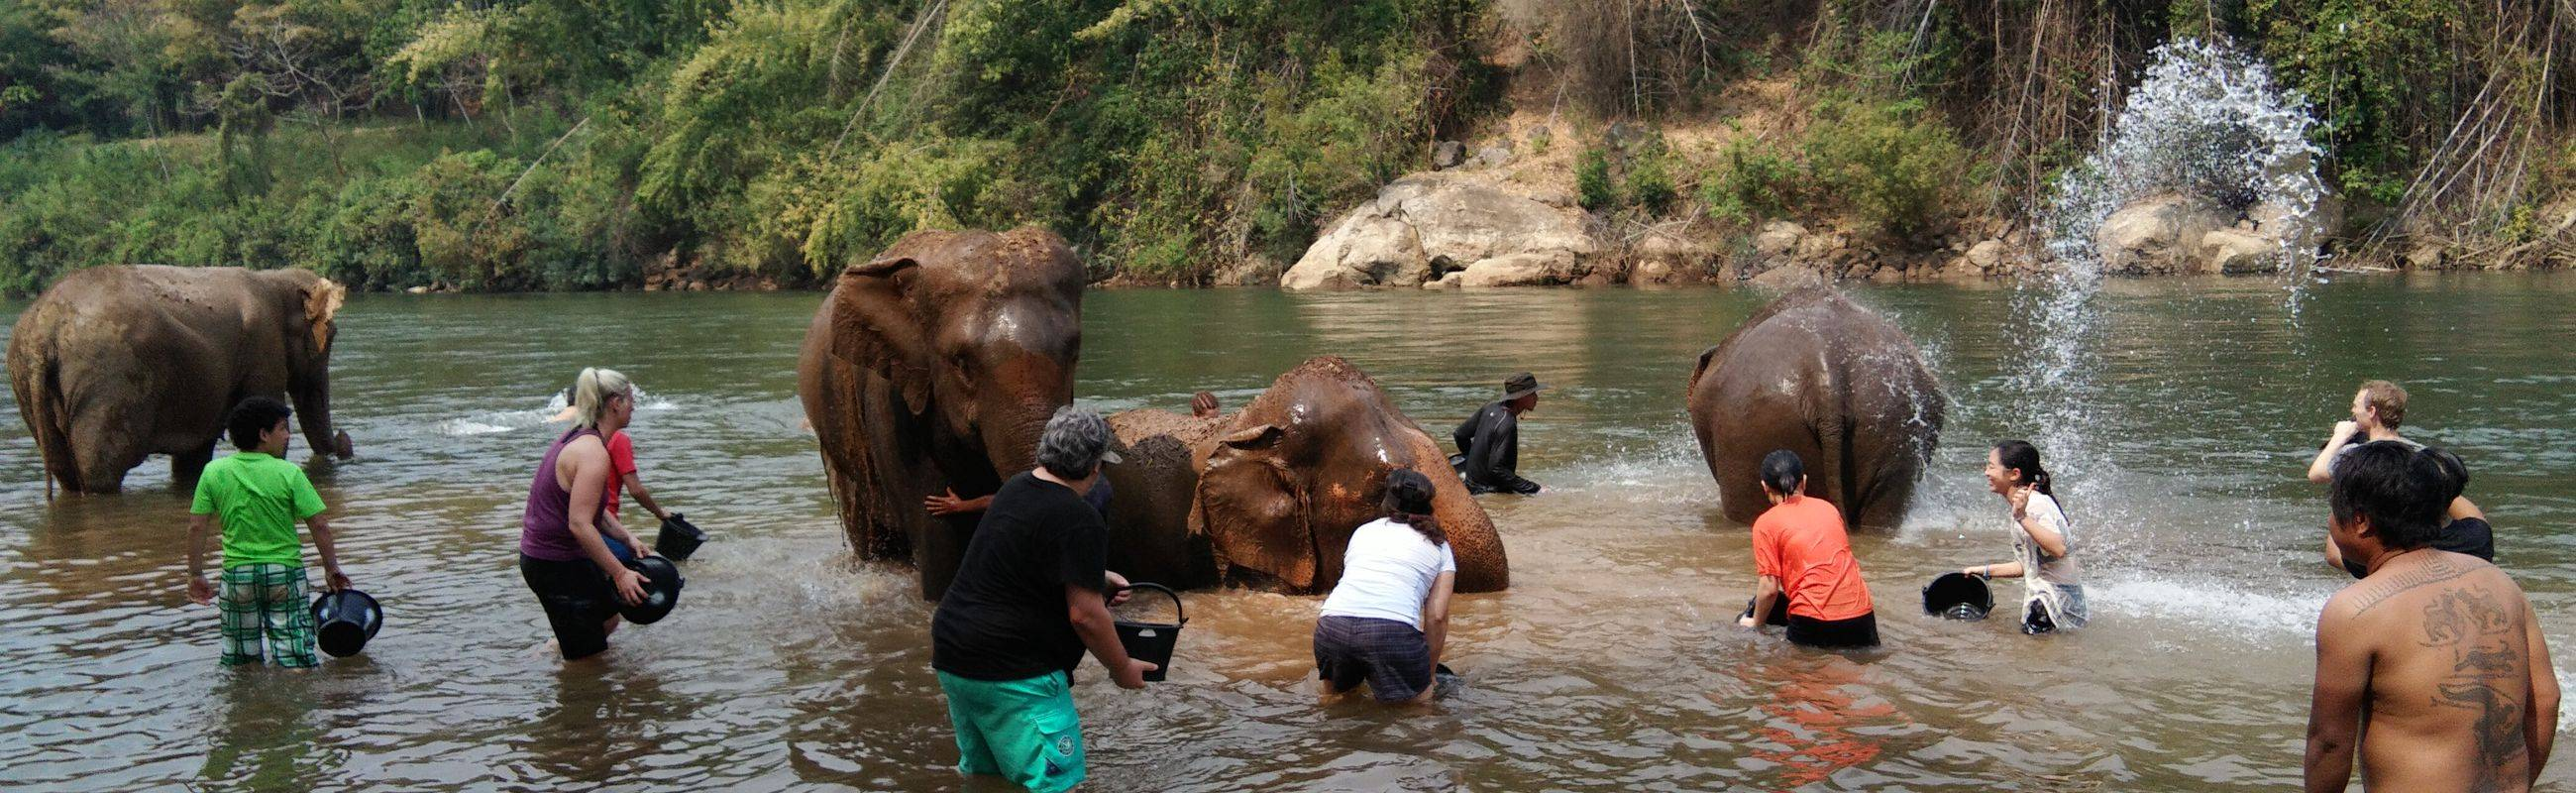 Ethical Tourism to the Elephant's Home in Kanchanaburi ( Day trip from Bangkok)